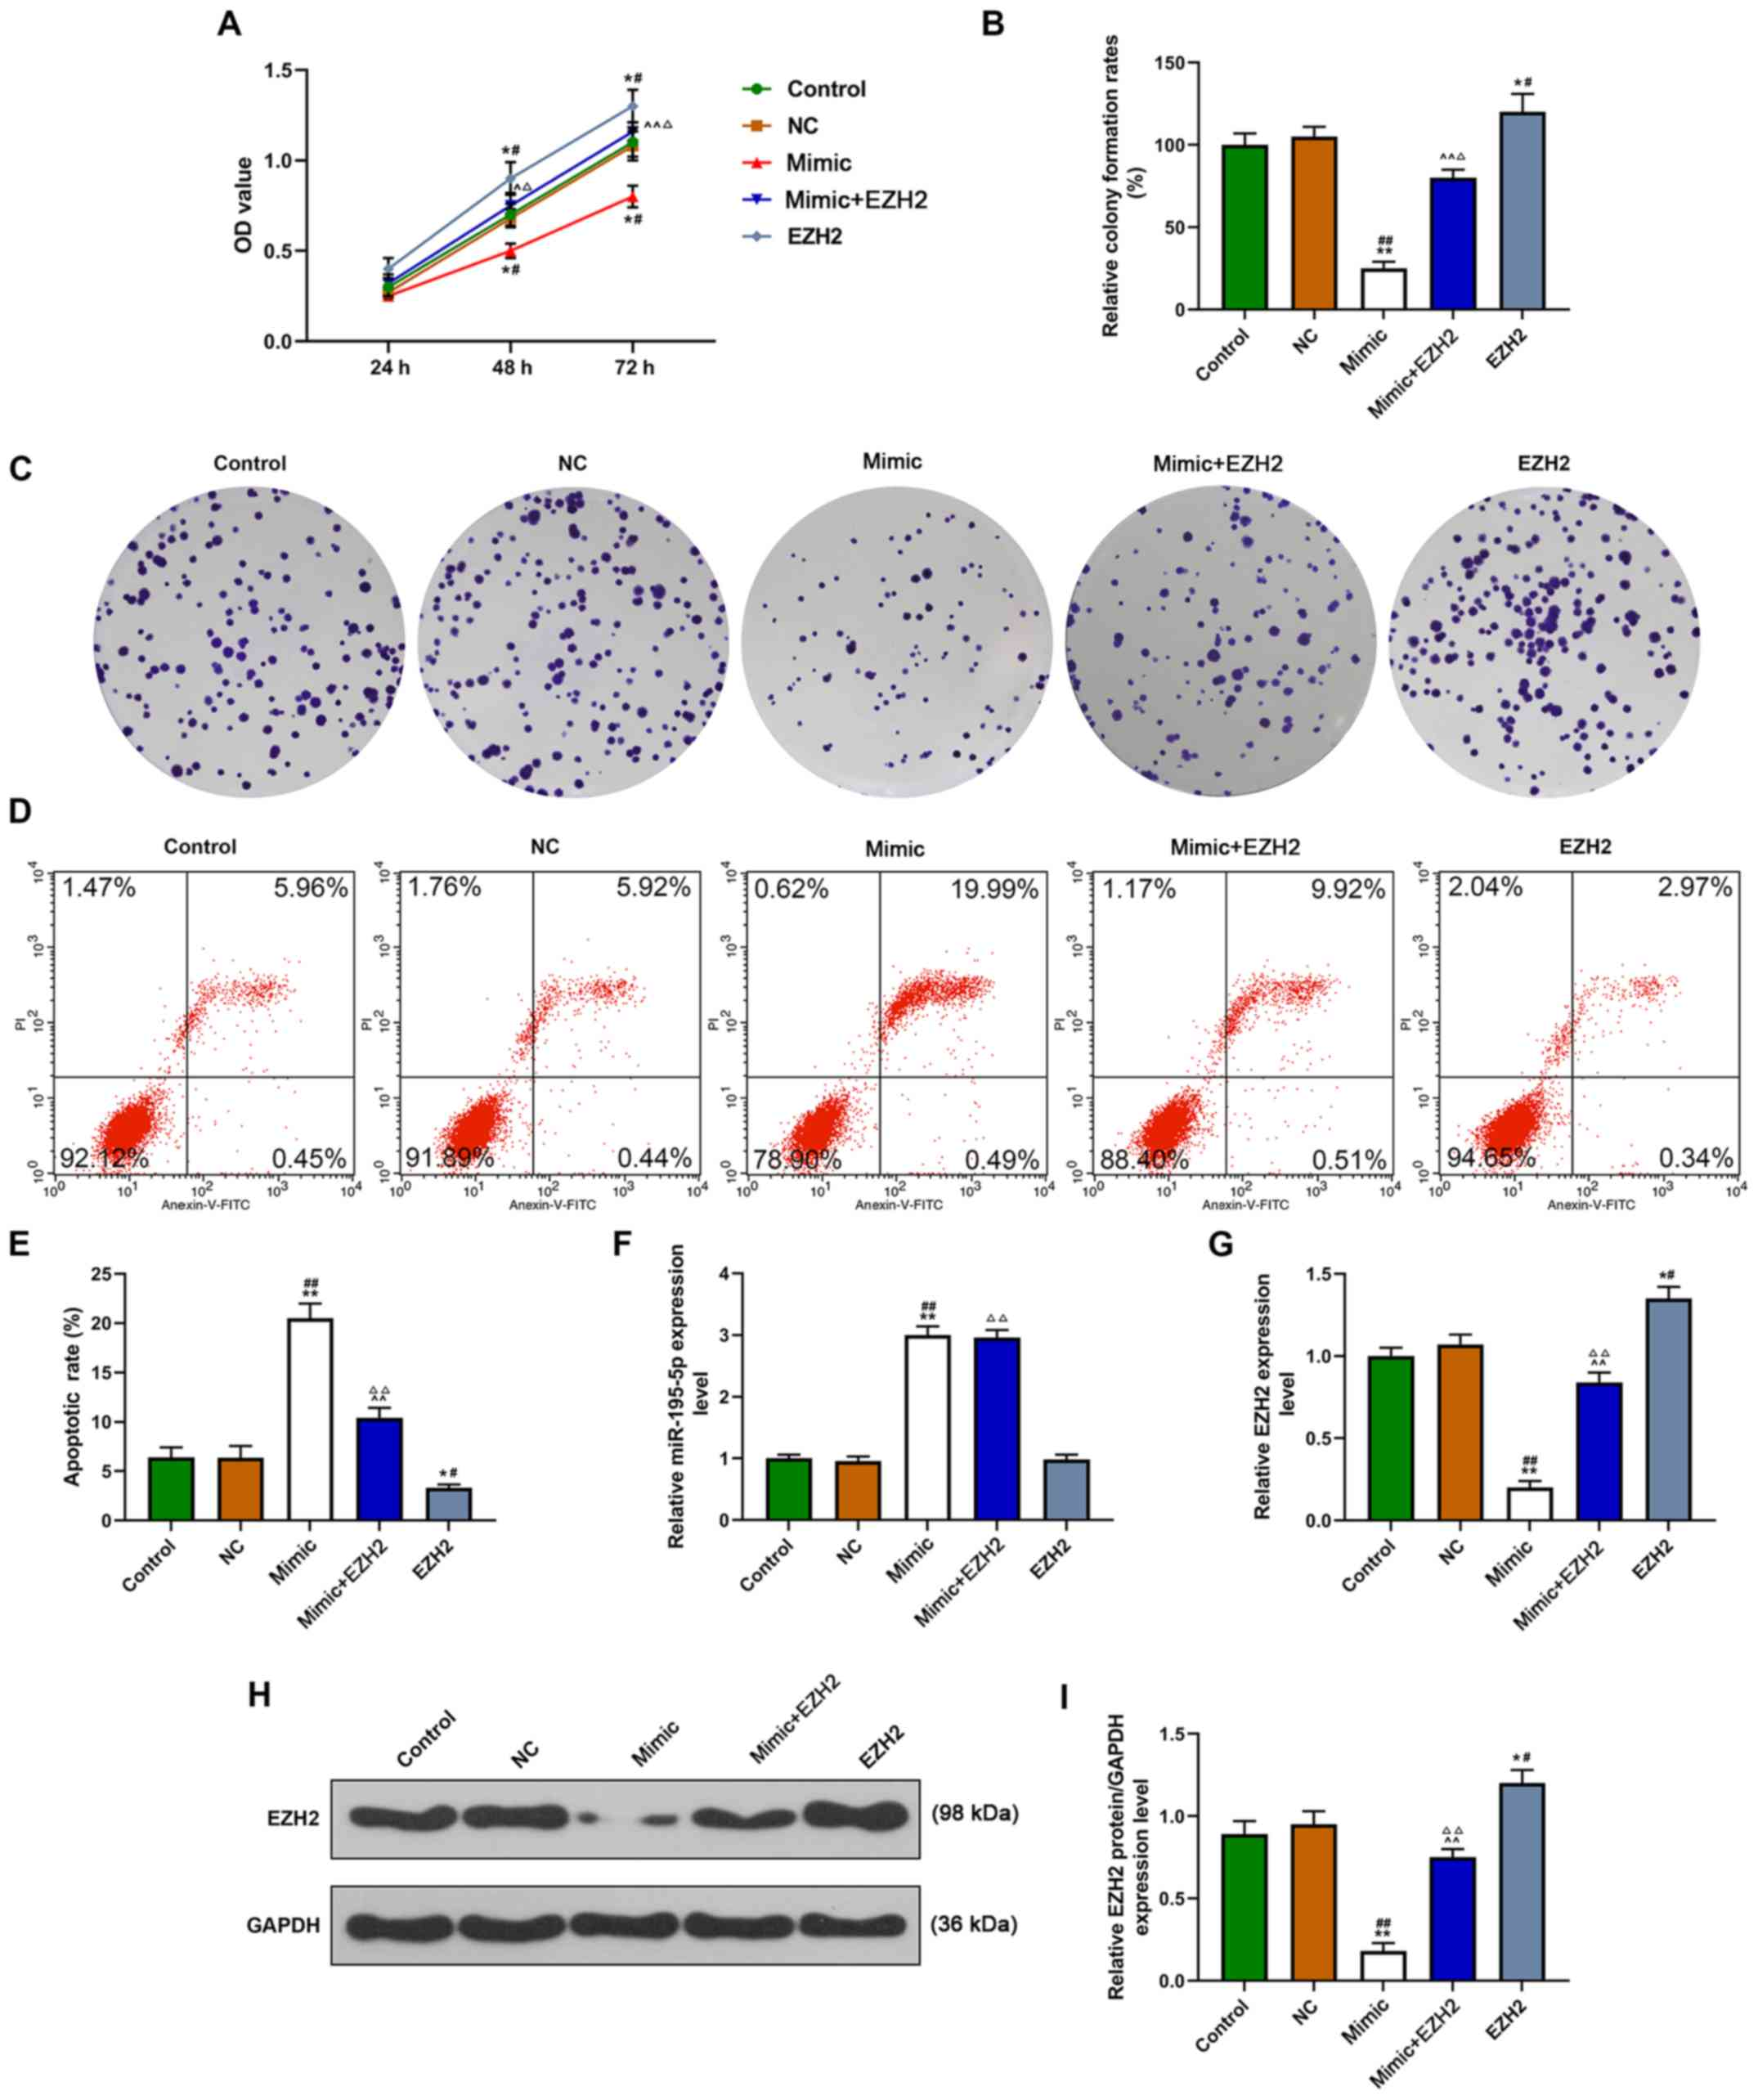 MiR-195-5p inhibition reversed the inhibitory effect of